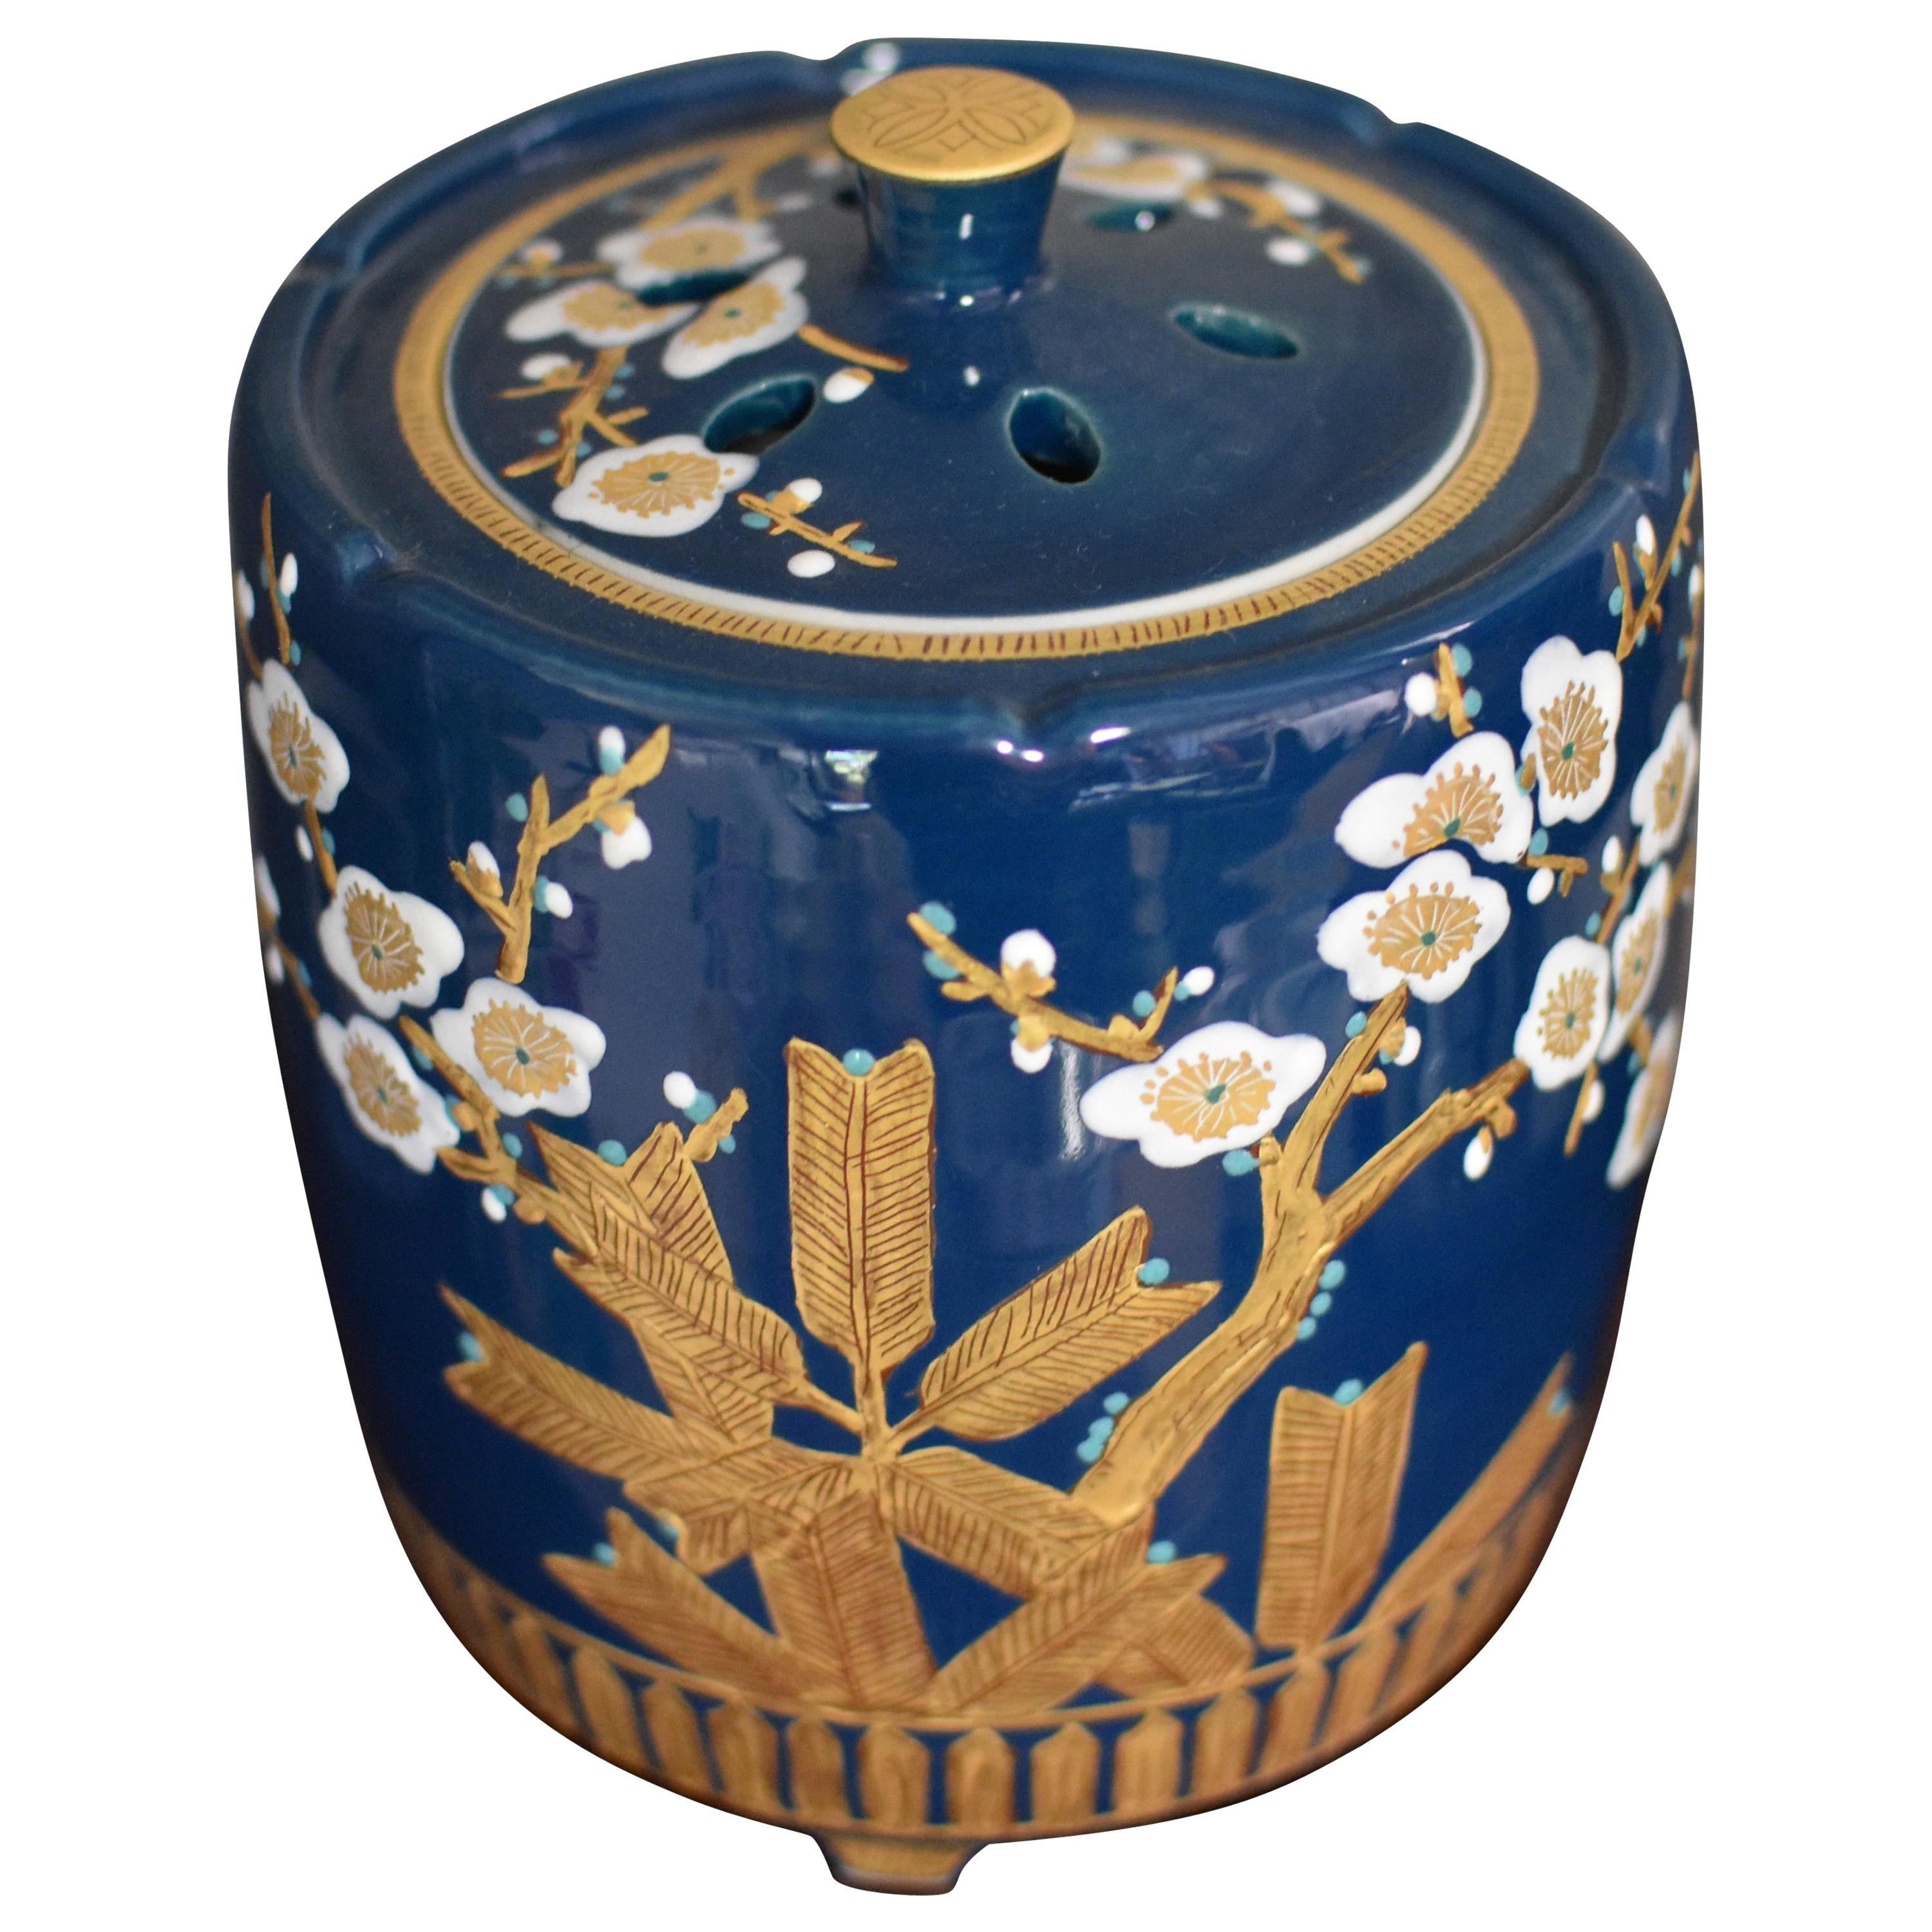 Japanese Blue Pure Gold Porcelain Incense Burner by Contemporary Master Artist